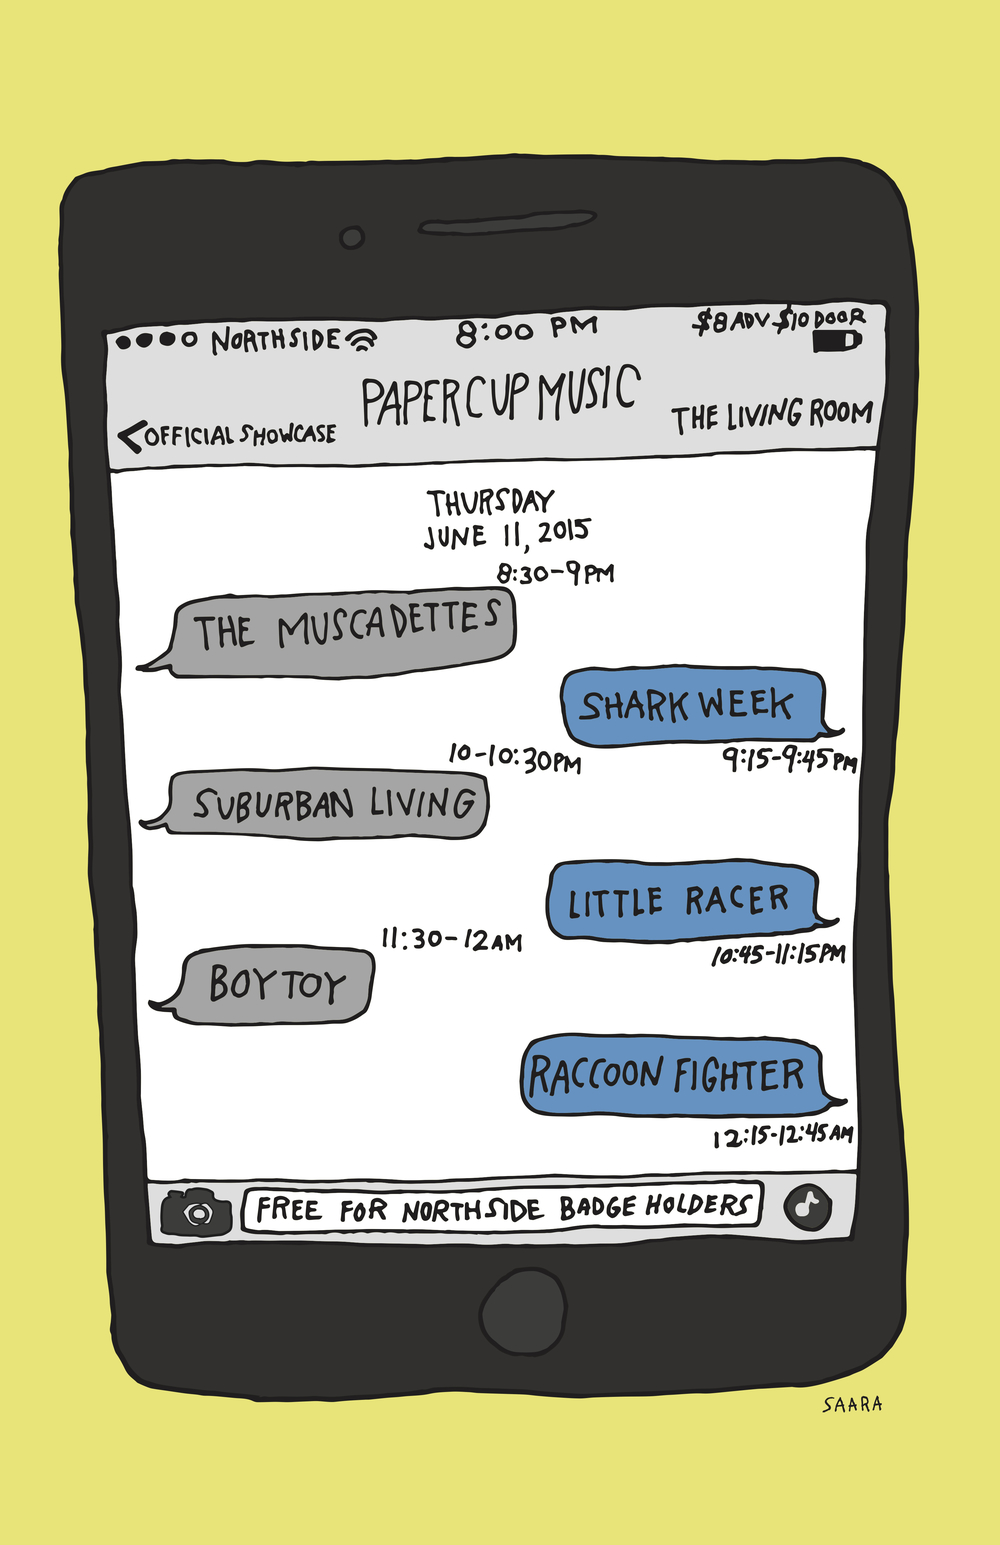 Northside Festival Poster for Papercup Music Showcase